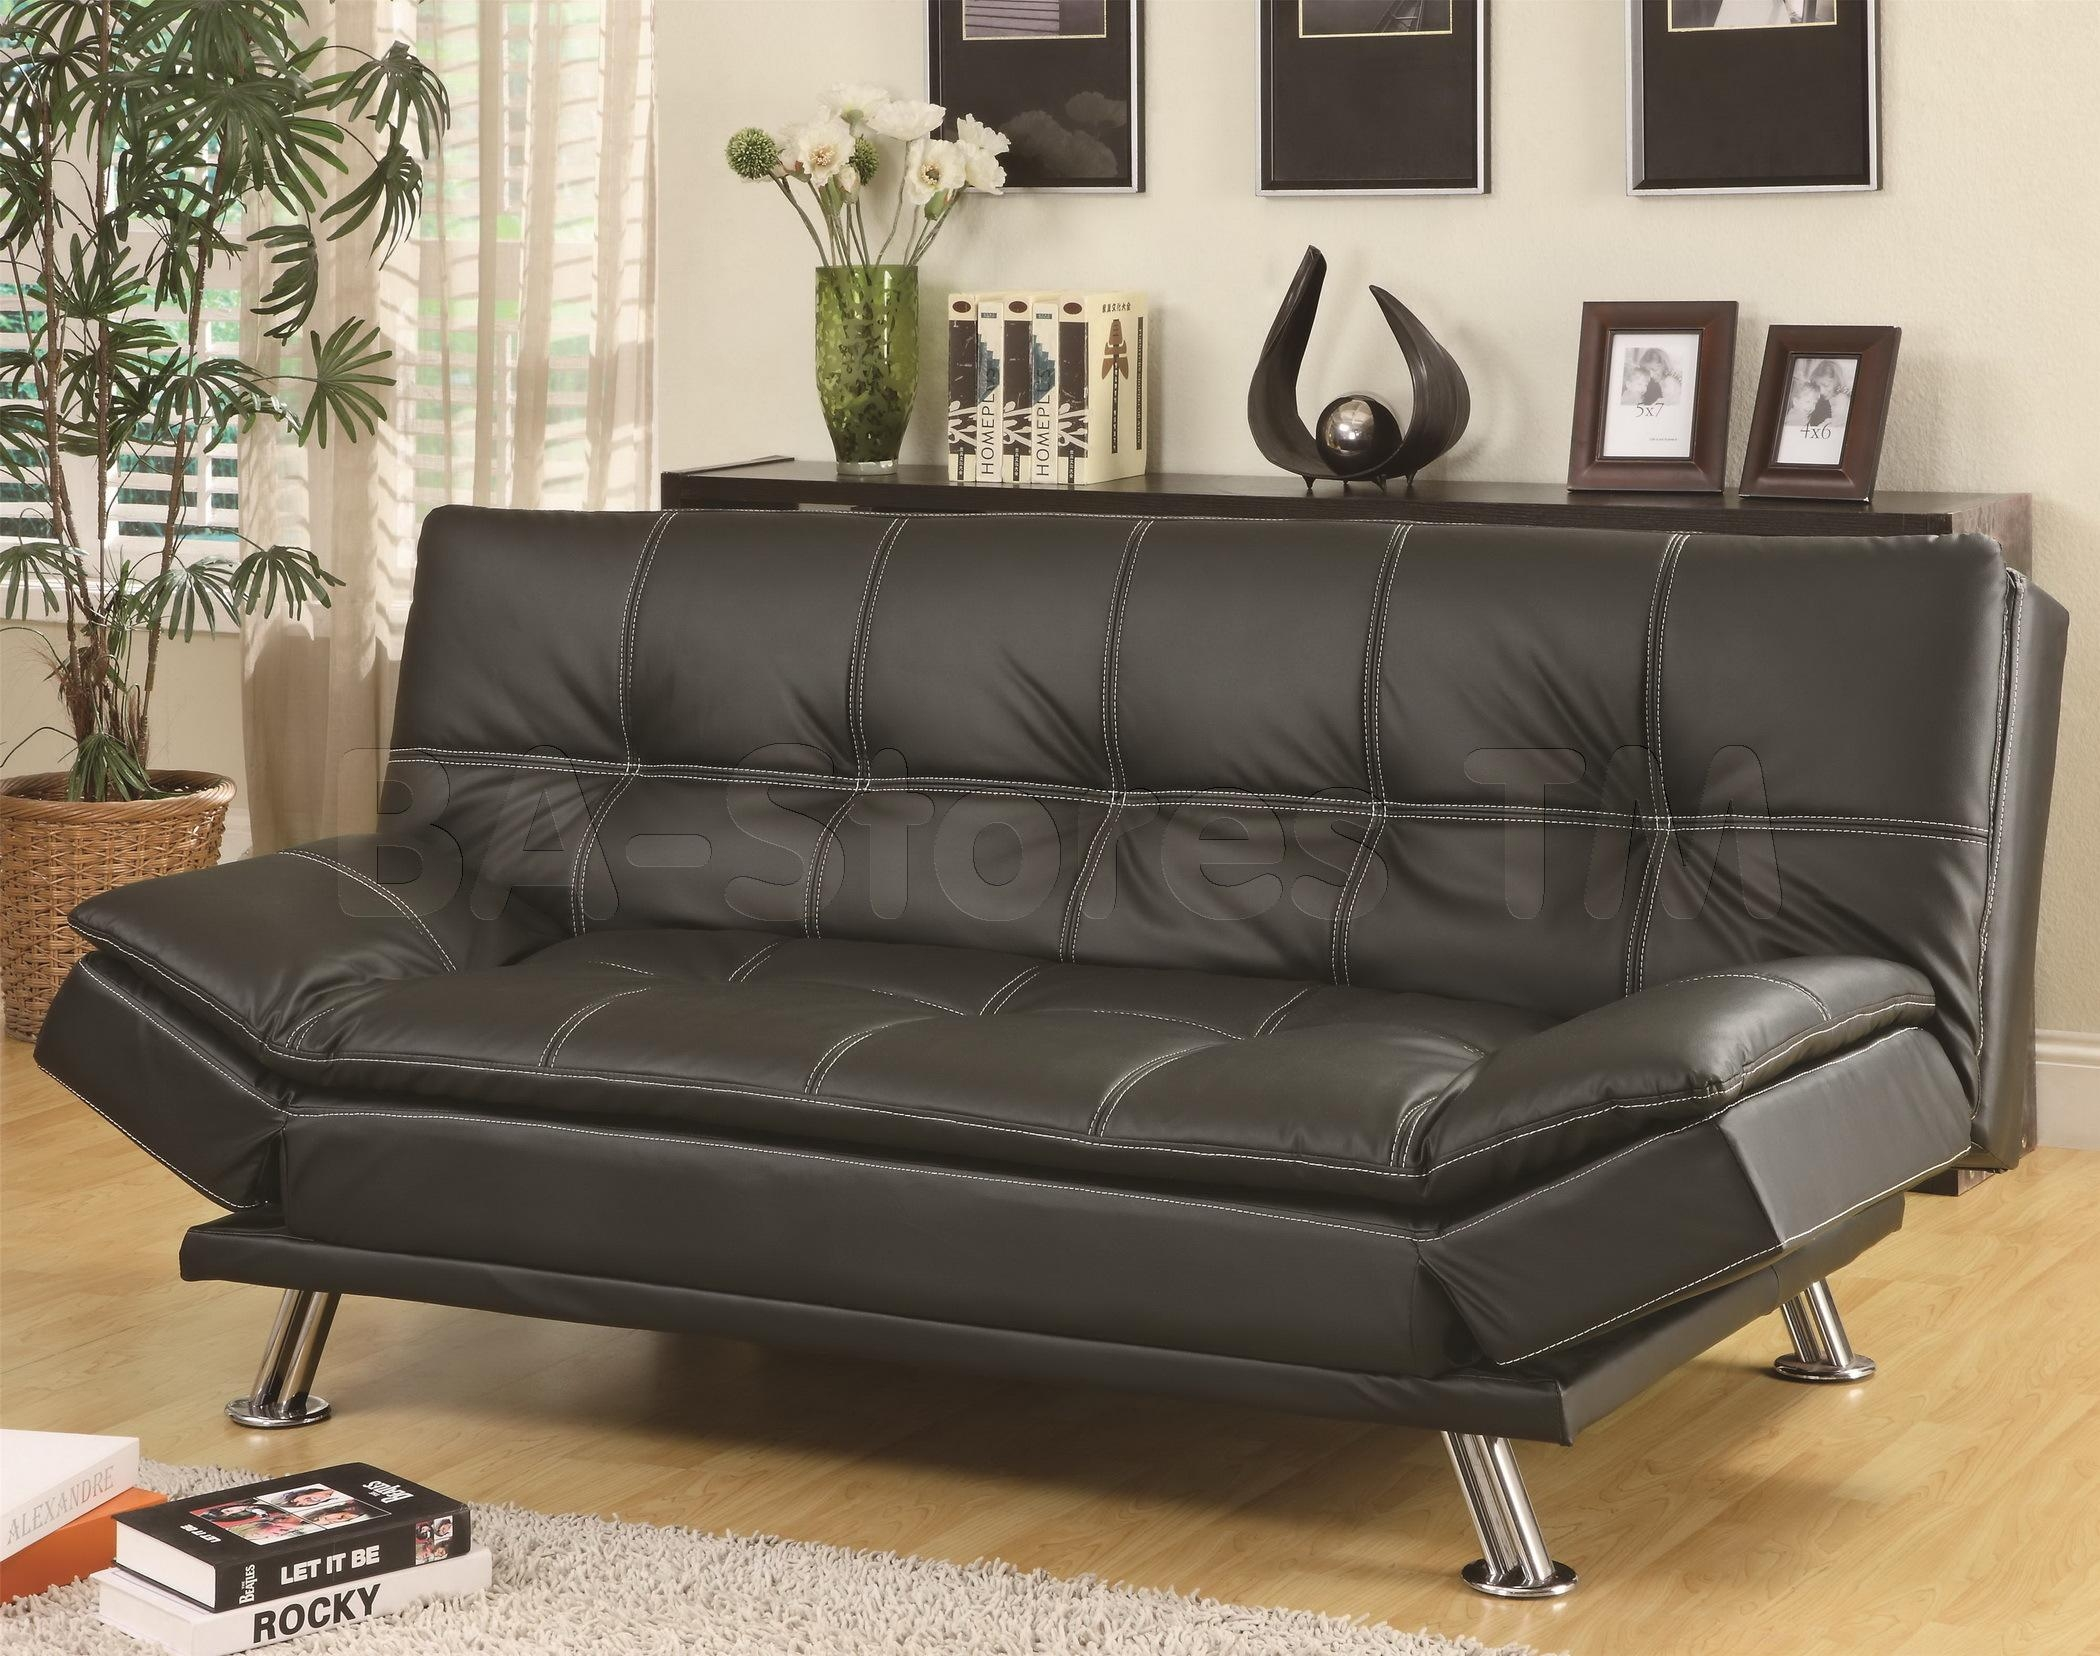 20 best ideas castro convertible sofa beds sofa ideas - Convertible center ...